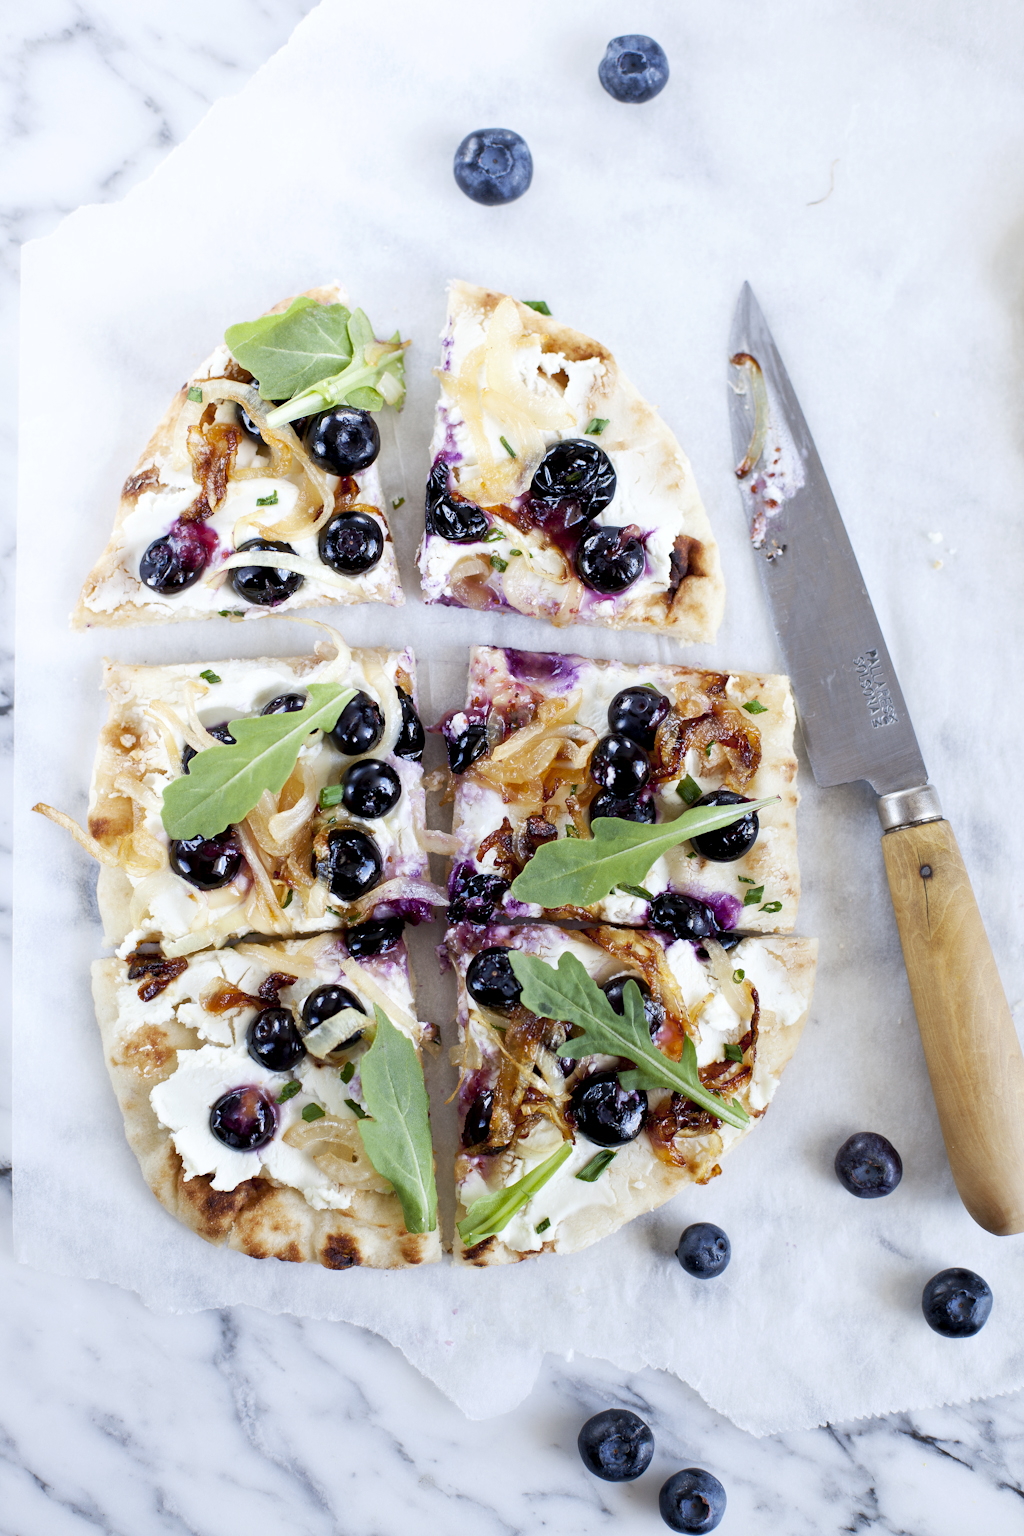 Blueberry naan pizza3_Emiliemurmure